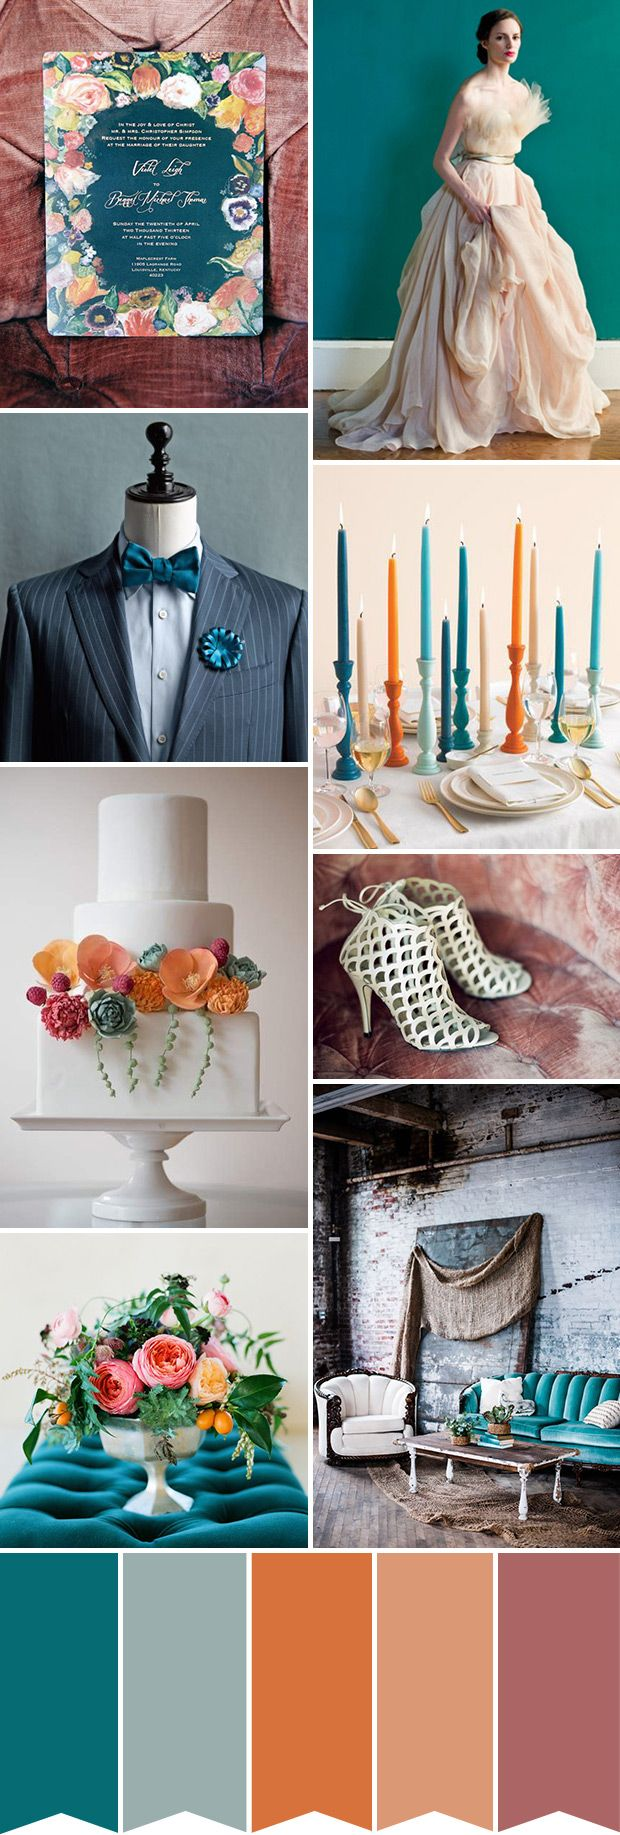 Teal and Orange Wedding Colour Palette | www.onefabday.com